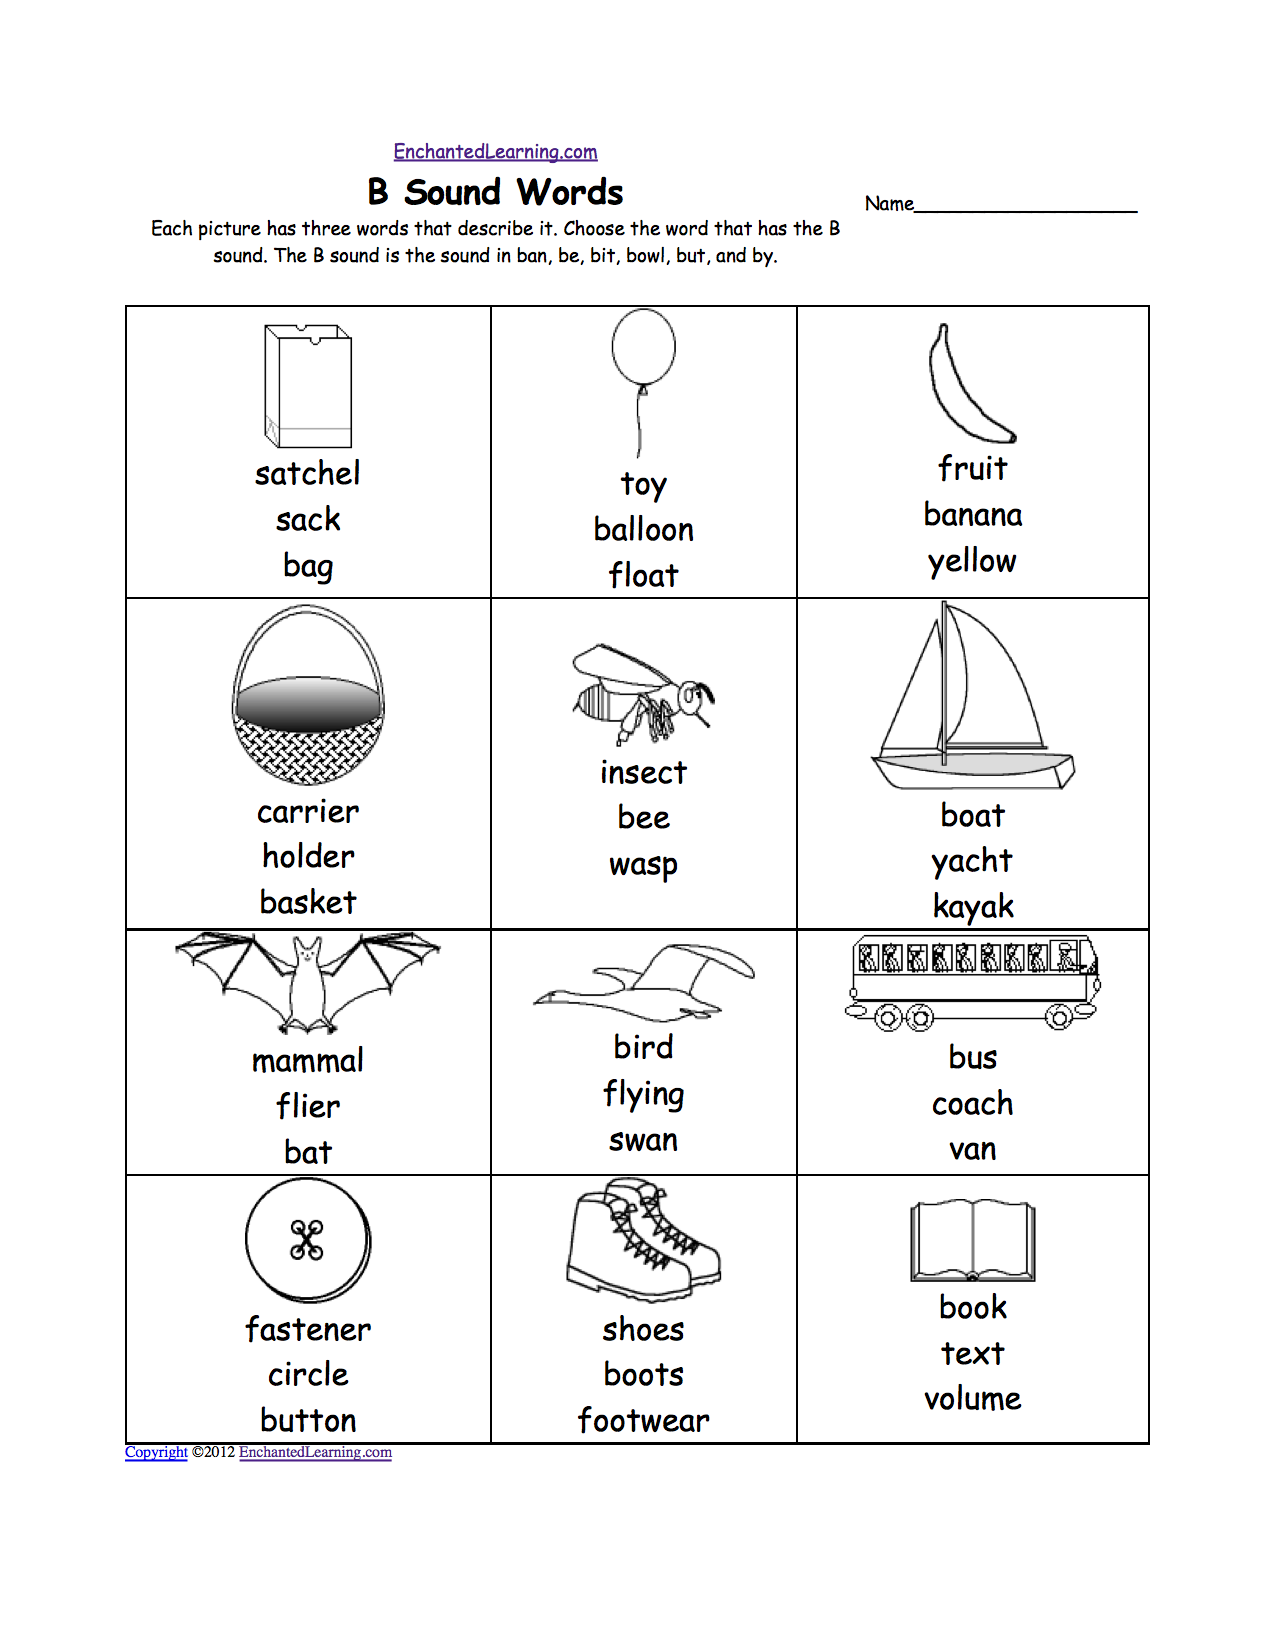 Weirdmailus  Pleasing Phonics Worksheets Multiple Choice Worksheets To Print  With Goodlooking Quotbquot Sound Phonics Worksheet Multiple Choice Each Picture Has Three Words That Describe It Choose The Word That Has A Quotbquot Sound The Quotbquot Sound Is The Sound  With Nice Solubility Product Worksheet Also Adding And Subtracting Integer Worksheets In Addition Counting By S Worksheets And Astronomy Worksheet As Well As Indirect Object Worksheet Additionally Chromatography Worksheet From Enchantedlearningcom With Weirdmailus  Goodlooking Phonics Worksheets Multiple Choice Worksheets To Print  With Nice Quotbquot Sound Phonics Worksheet Multiple Choice Each Picture Has Three Words That Describe It Choose The Word That Has A Quotbquot Sound The Quotbquot Sound Is The Sound  And Pleasing Solubility Product Worksheet Also Adding And Subtracting Integer Worksheets In Addition Counting By S Worksheets From Enchantedlearningcom